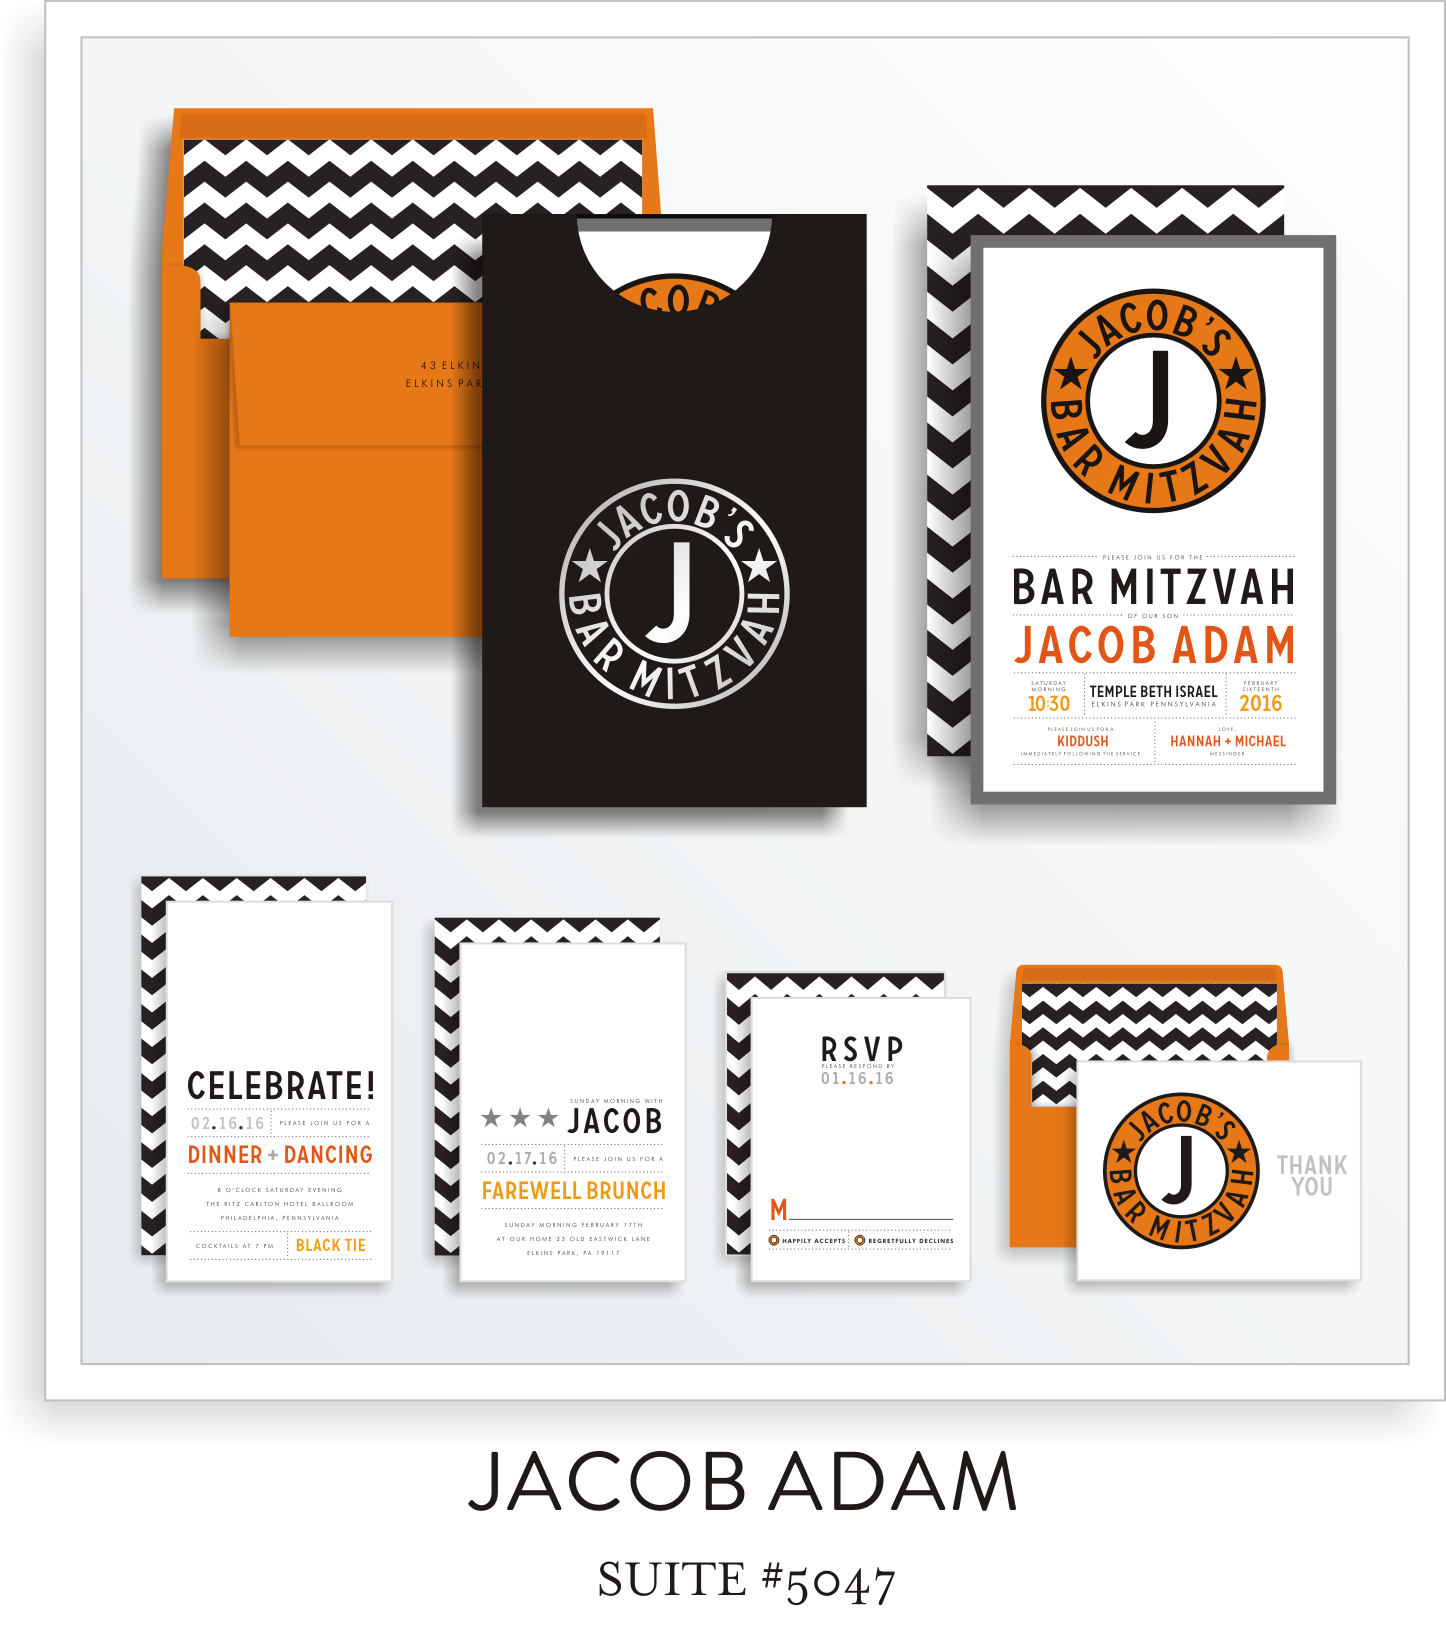 Copy of Copy of <a href=/bar-mitzvah-invitations-5047>Suite Details→</a><strong><a href=/jacob-adam-in-colors>see more colors→</a></strong>